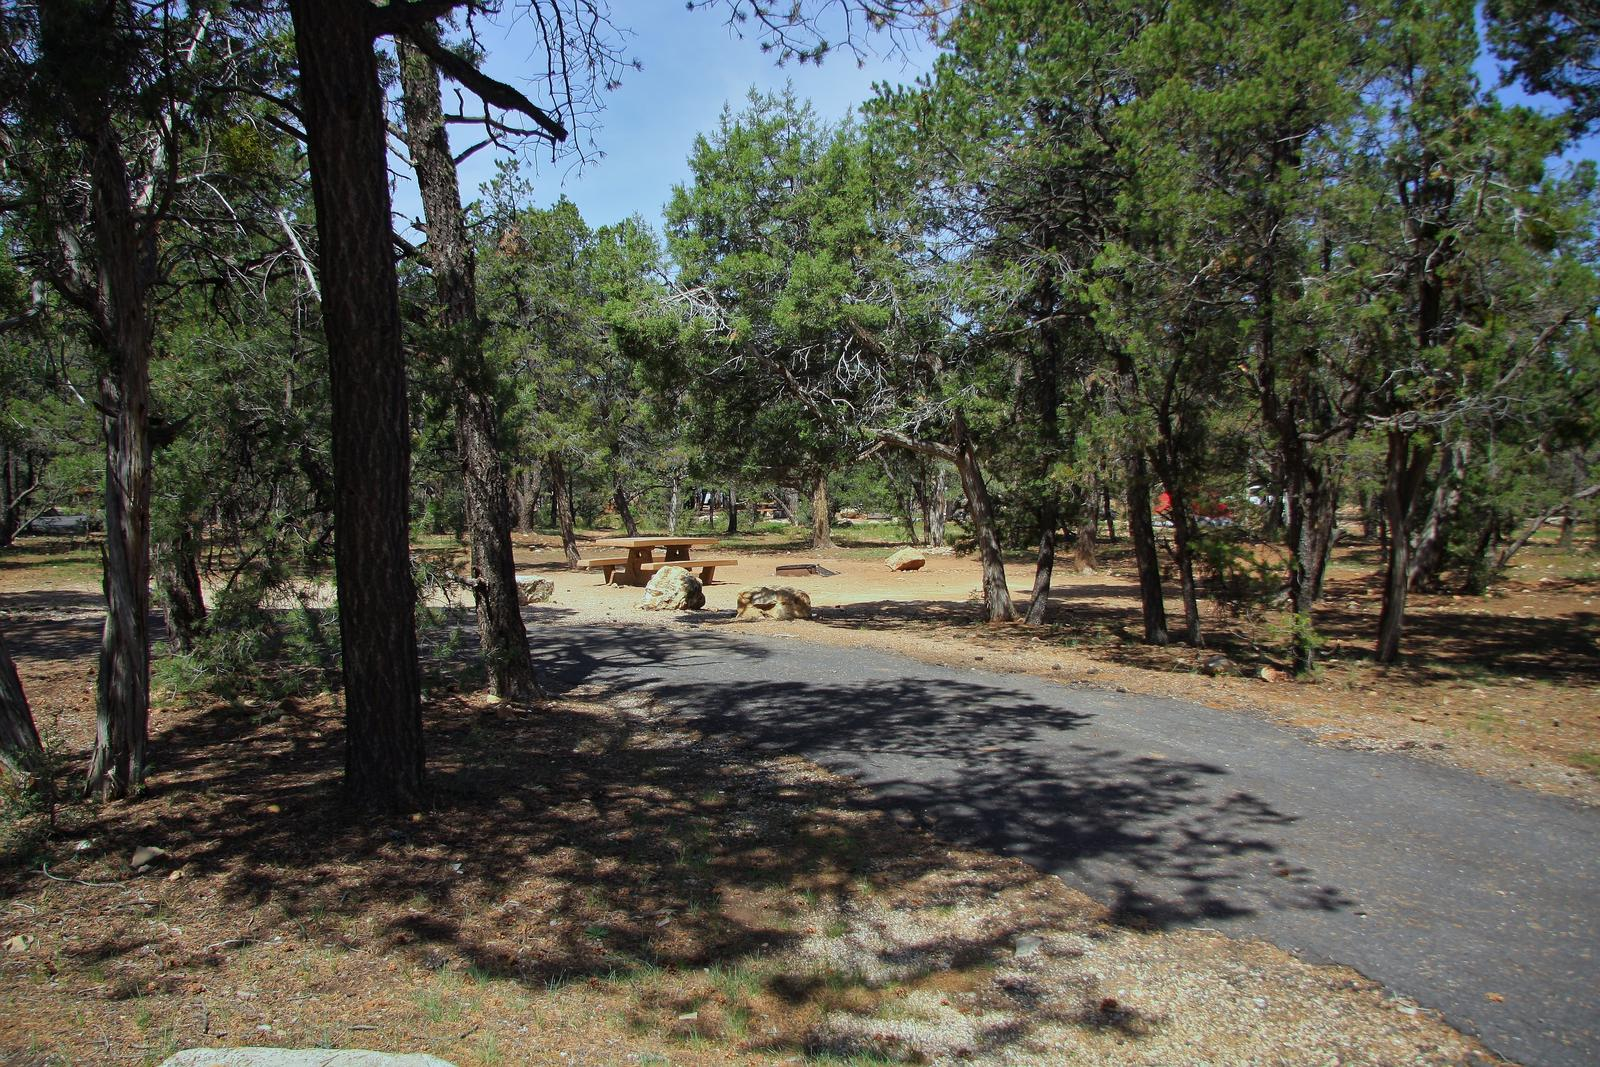 Picnic table, fire pit, and parking spot, Mather CampgroundPicnic table, fire pit, and parking spot for Oak Loop 202, Mather Campground